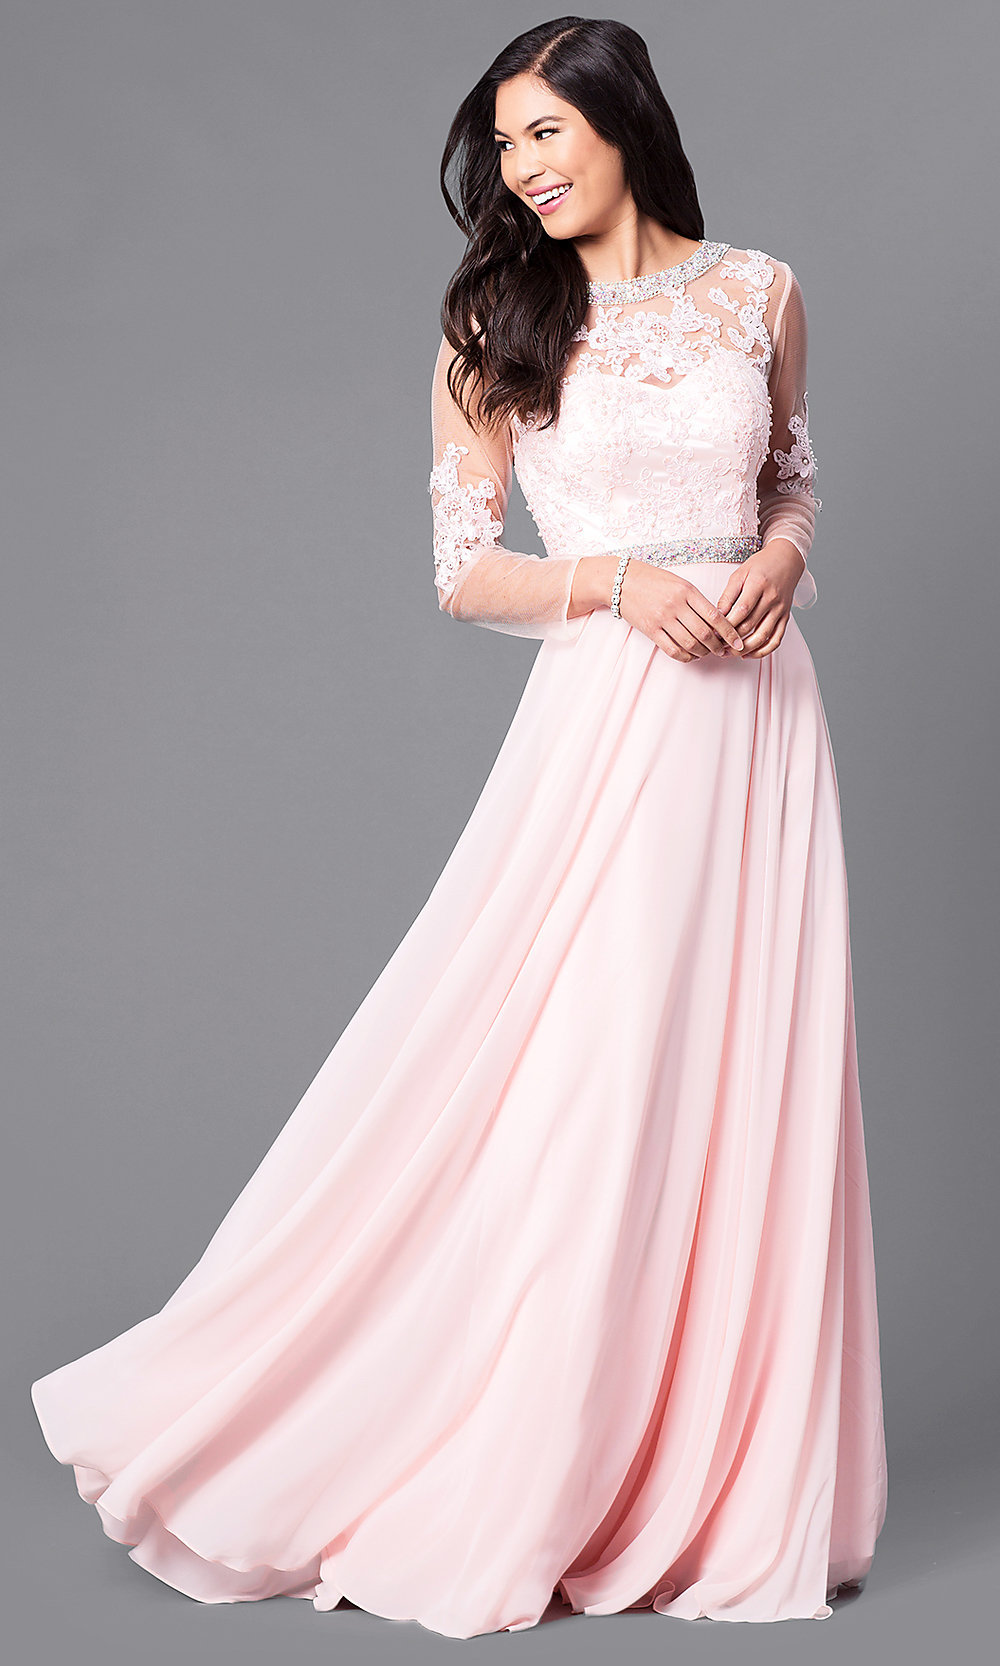 Cut-Out Prom Dress with Long Sheer Sleeves - PromGirl